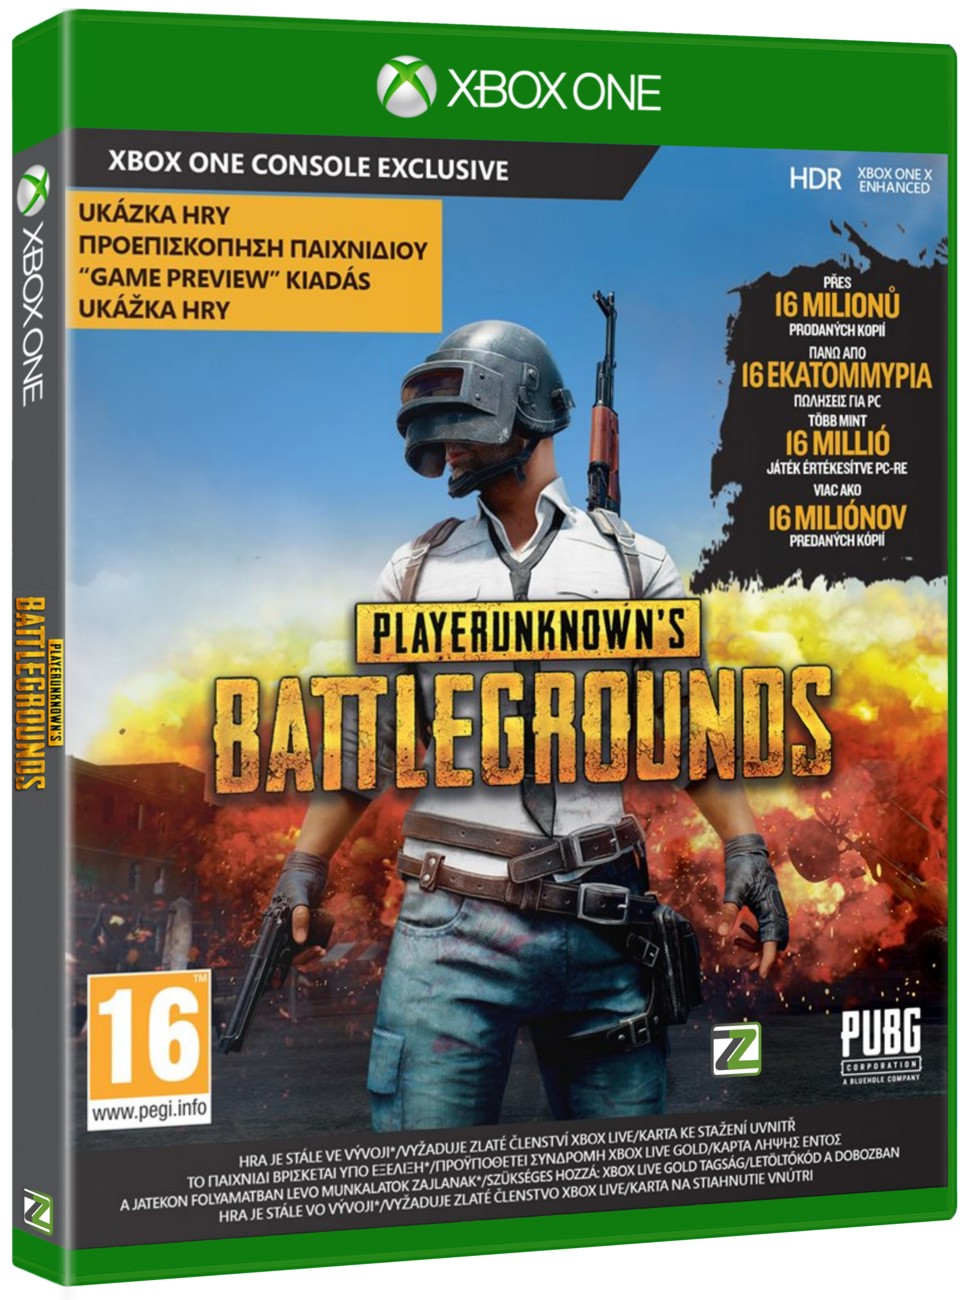 PlayerUnknown's Battlegrounds 1.0 (PUBG 1.0) - Xone